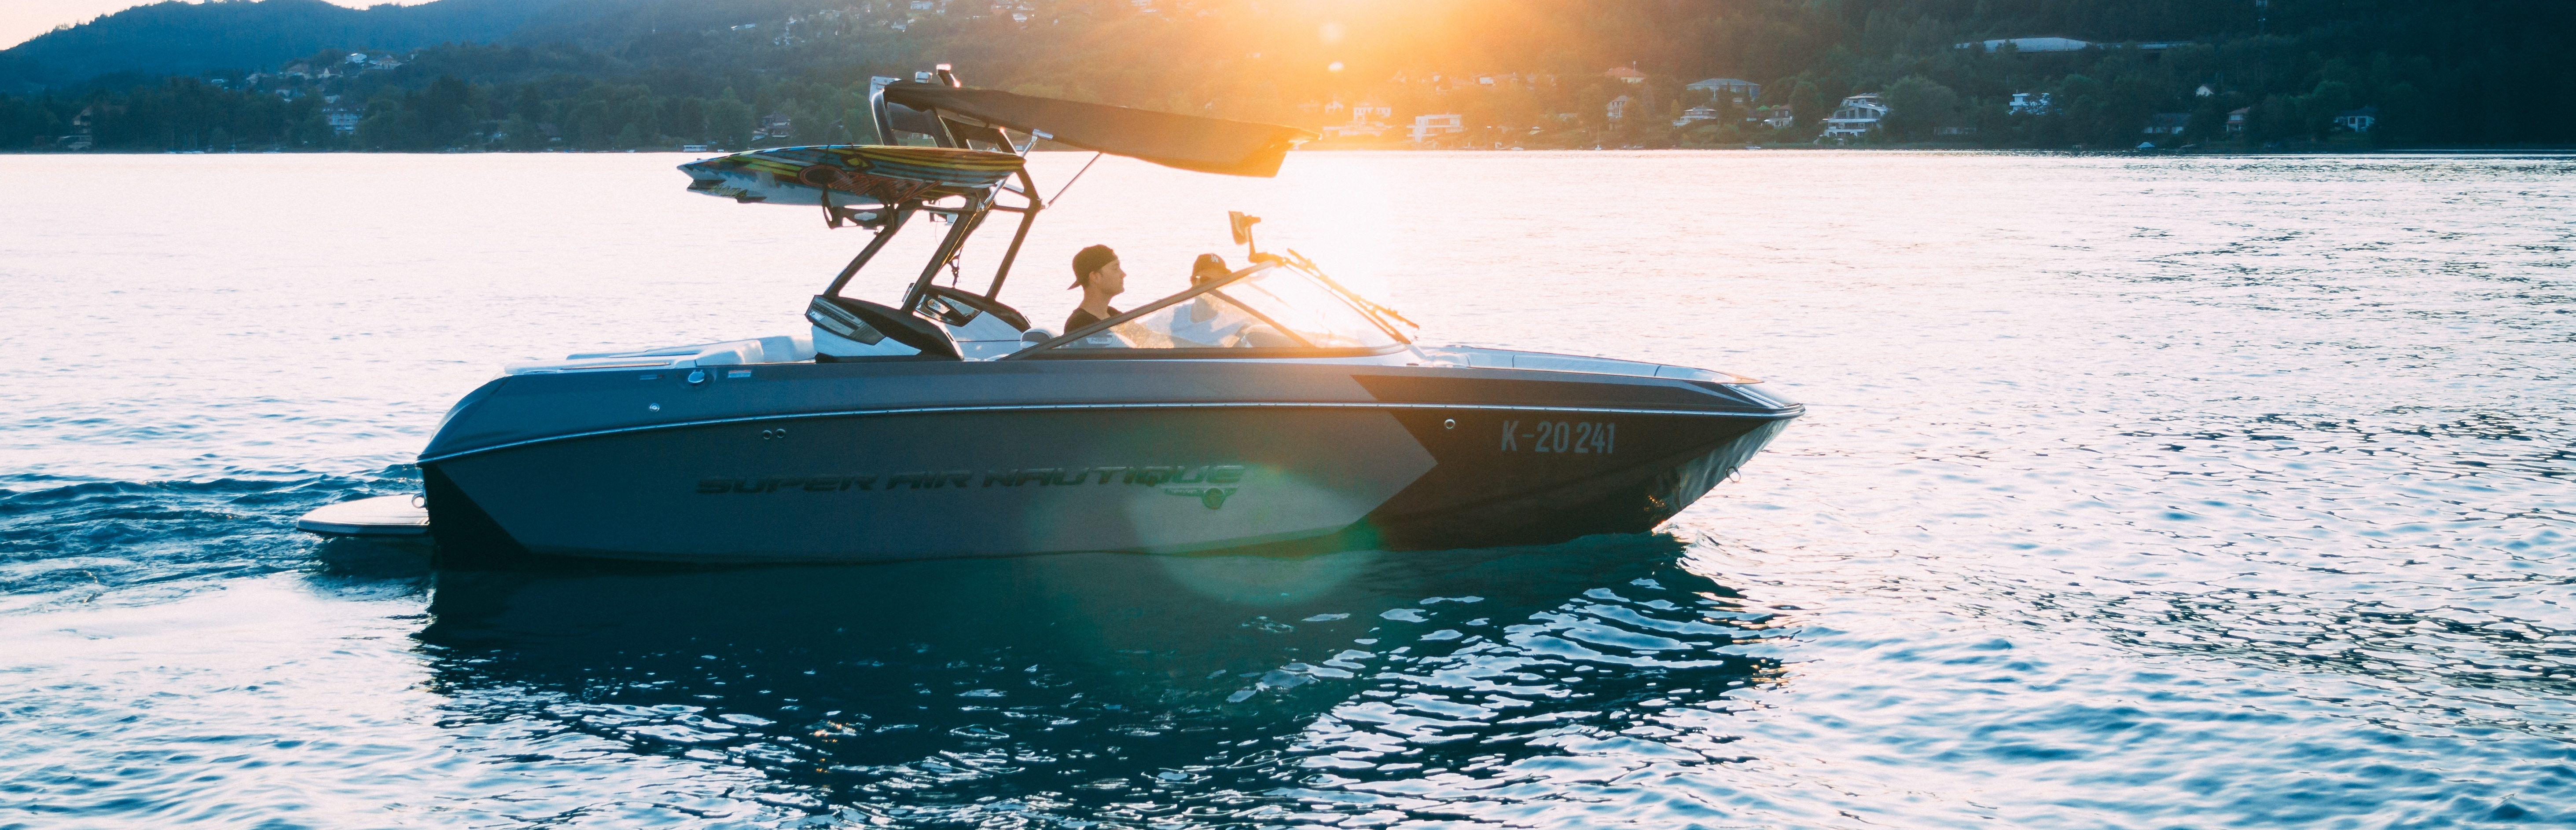 The Boater's Bucket List photo